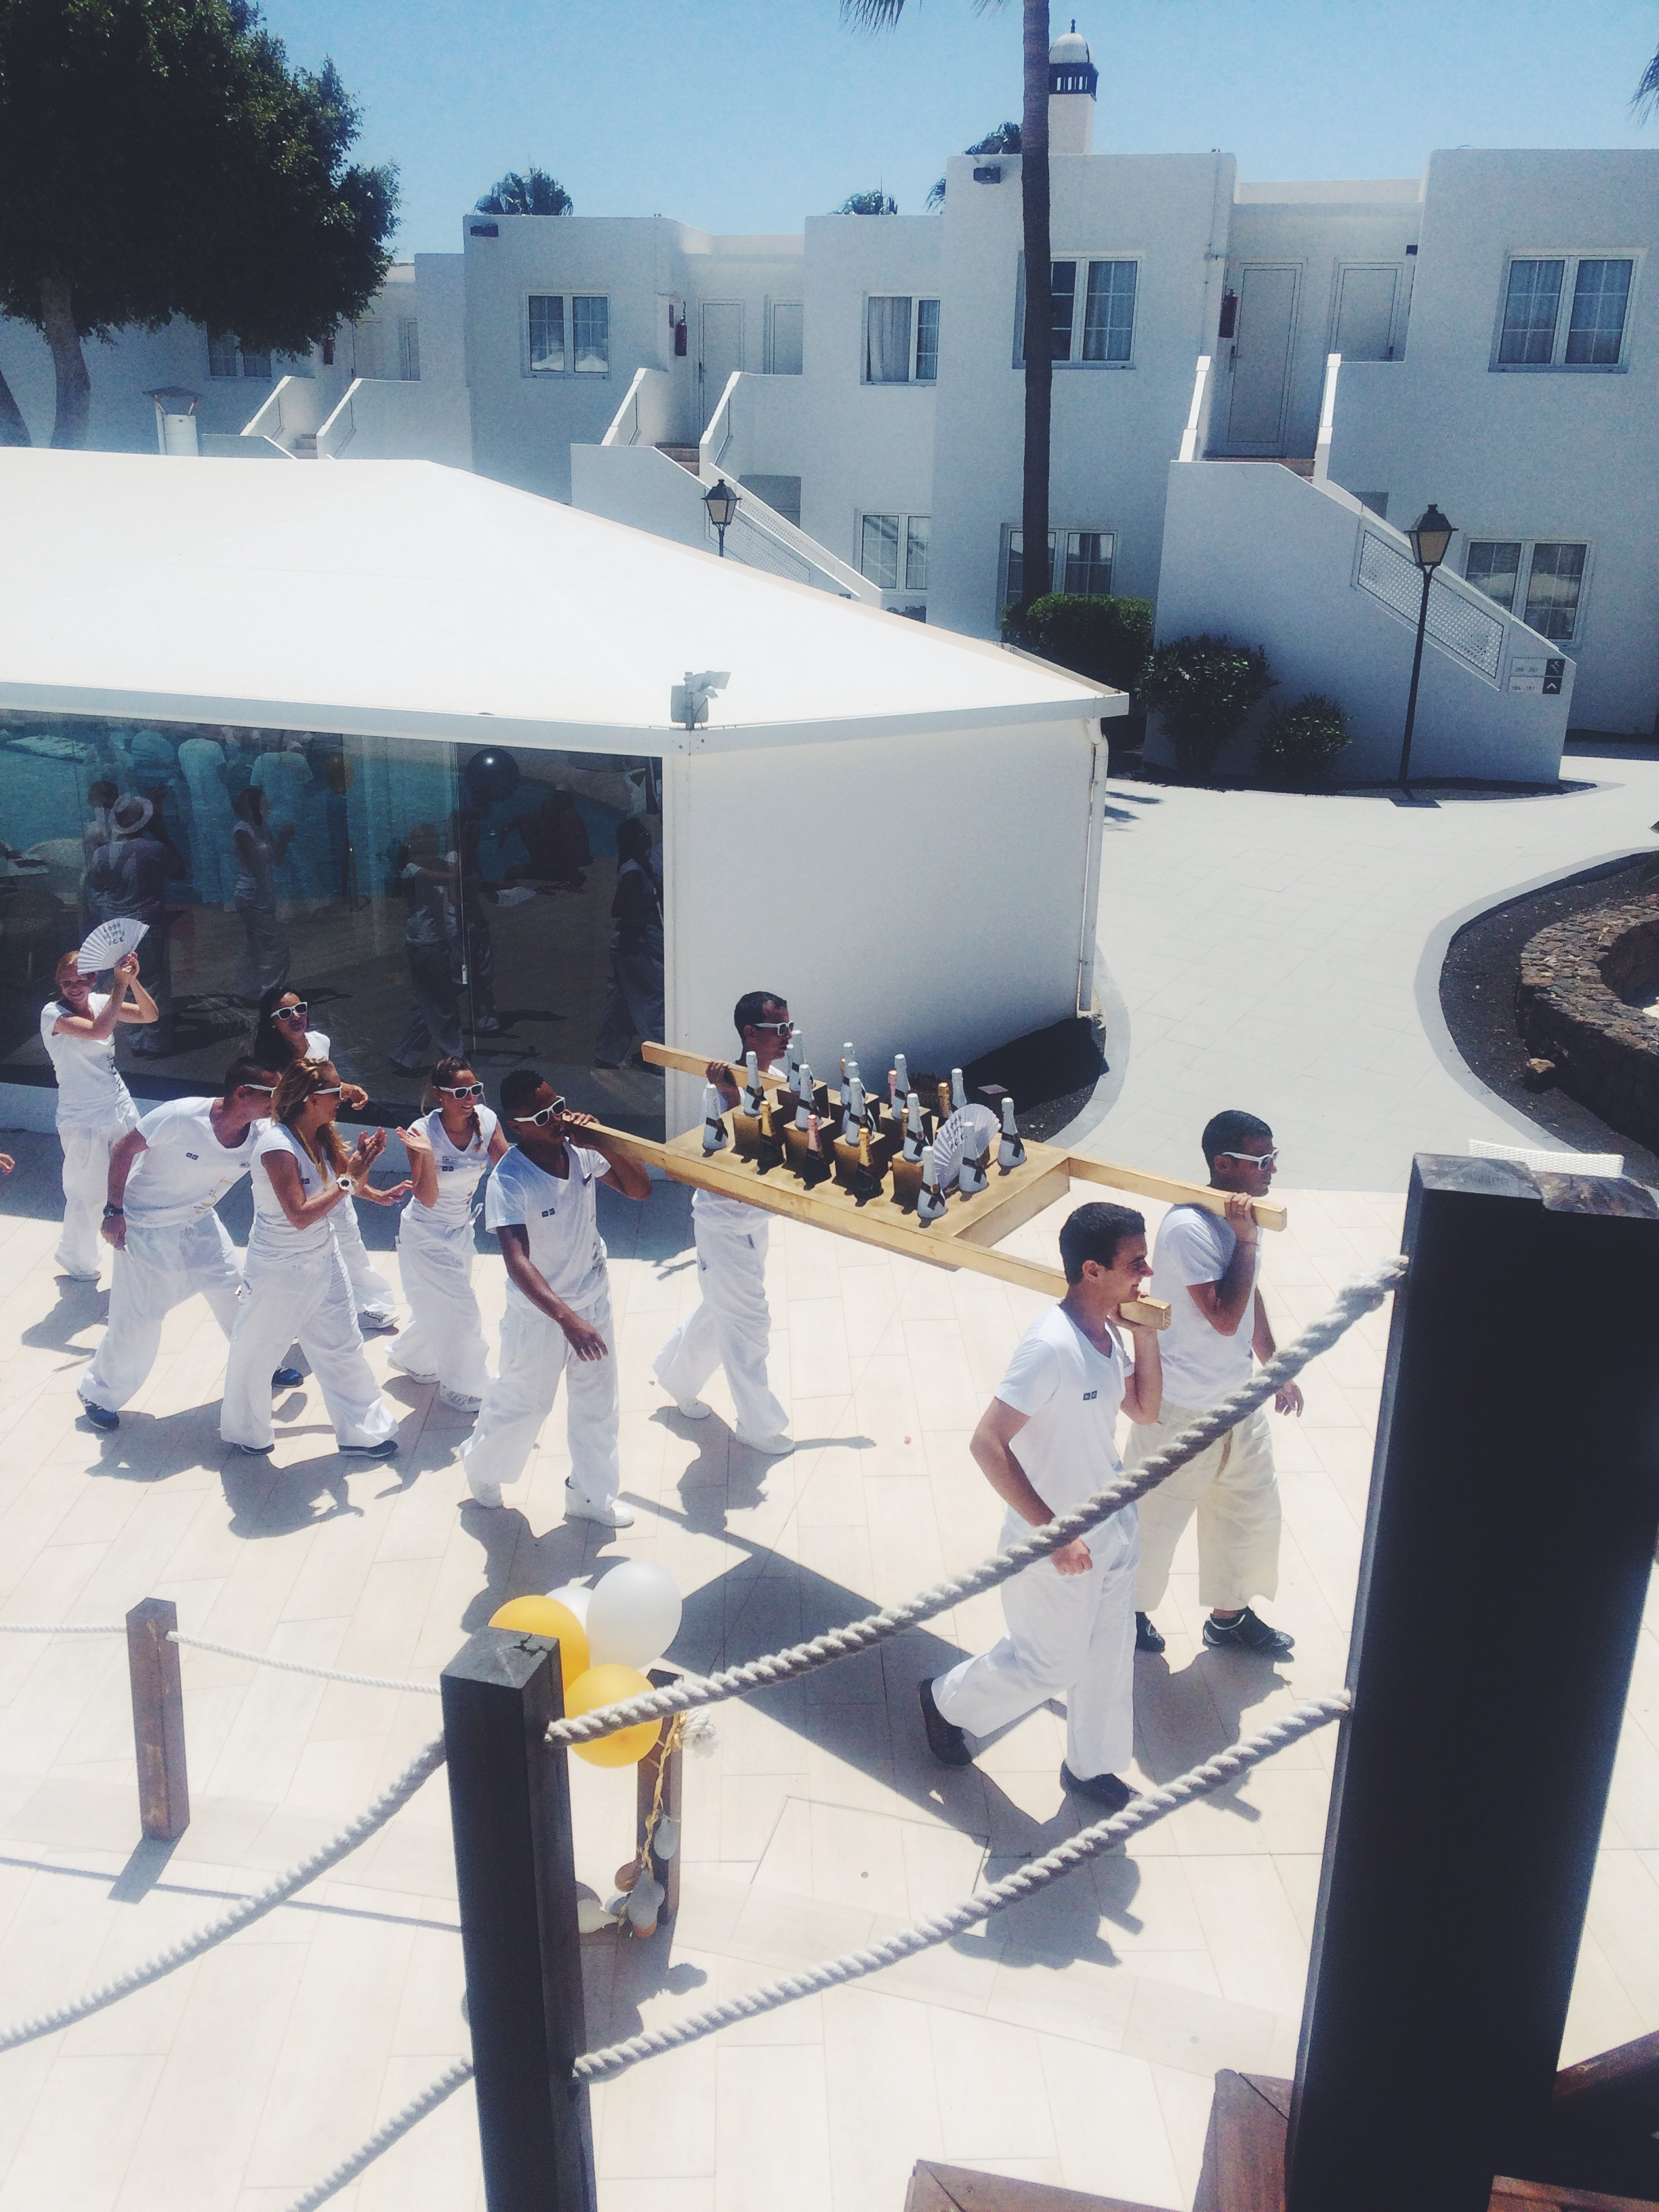 h10 White Suites Lanzarote Hotel, Moet Champagne Pool Party